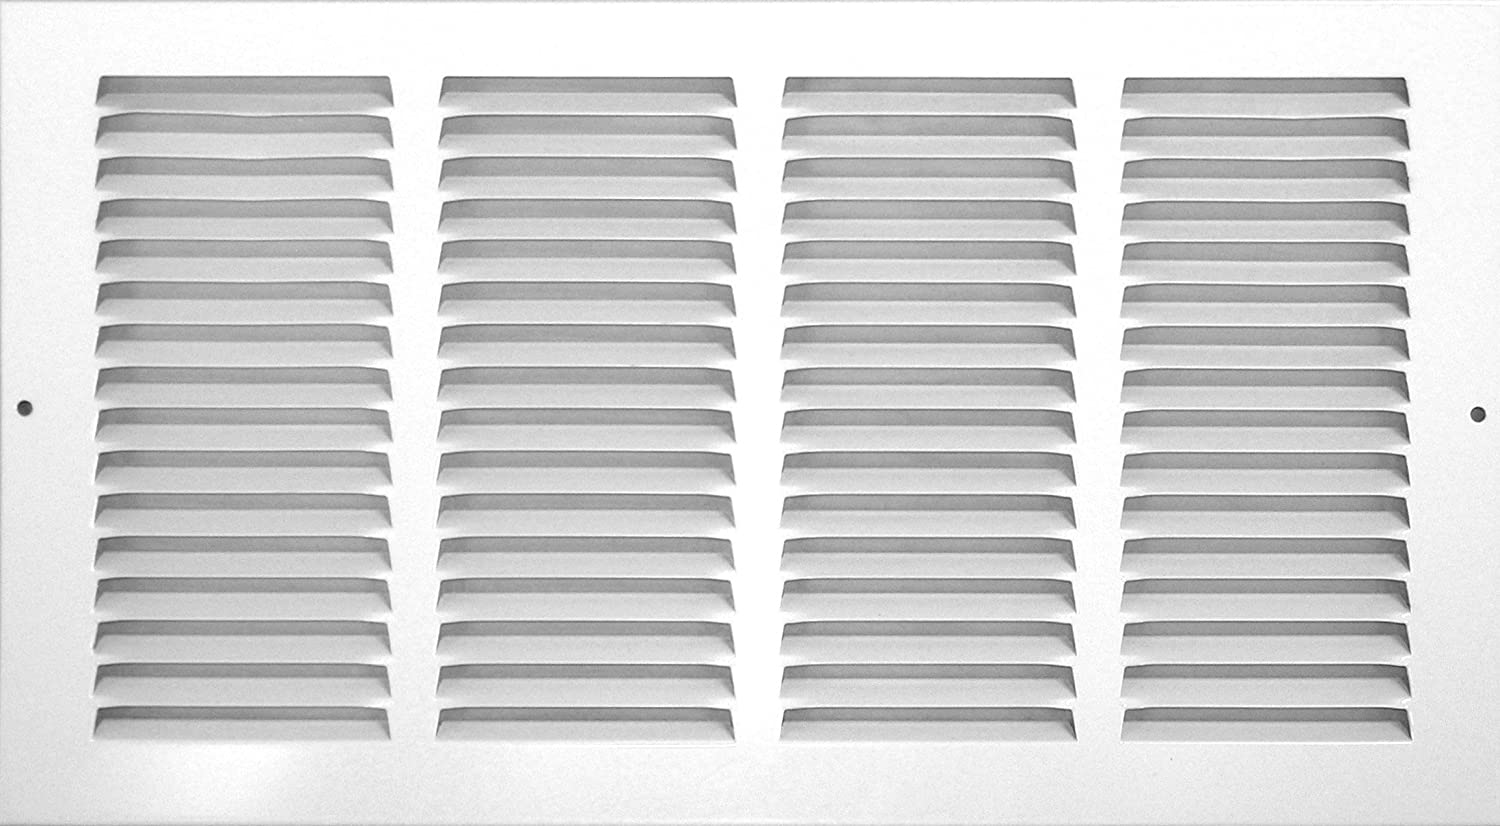 Accord Ventilation ABRGWH104 Return Grille with 1/2' Fin Louvered, 10' x 4'(Duct Opening Measurements), White 10 x 4(Duct Opening Measurements) Accord ABRGWH104 Return Grille with 1/2-Inch Fin Louvered 10-Inch x 4-Inch(Duct Opening Measurements)